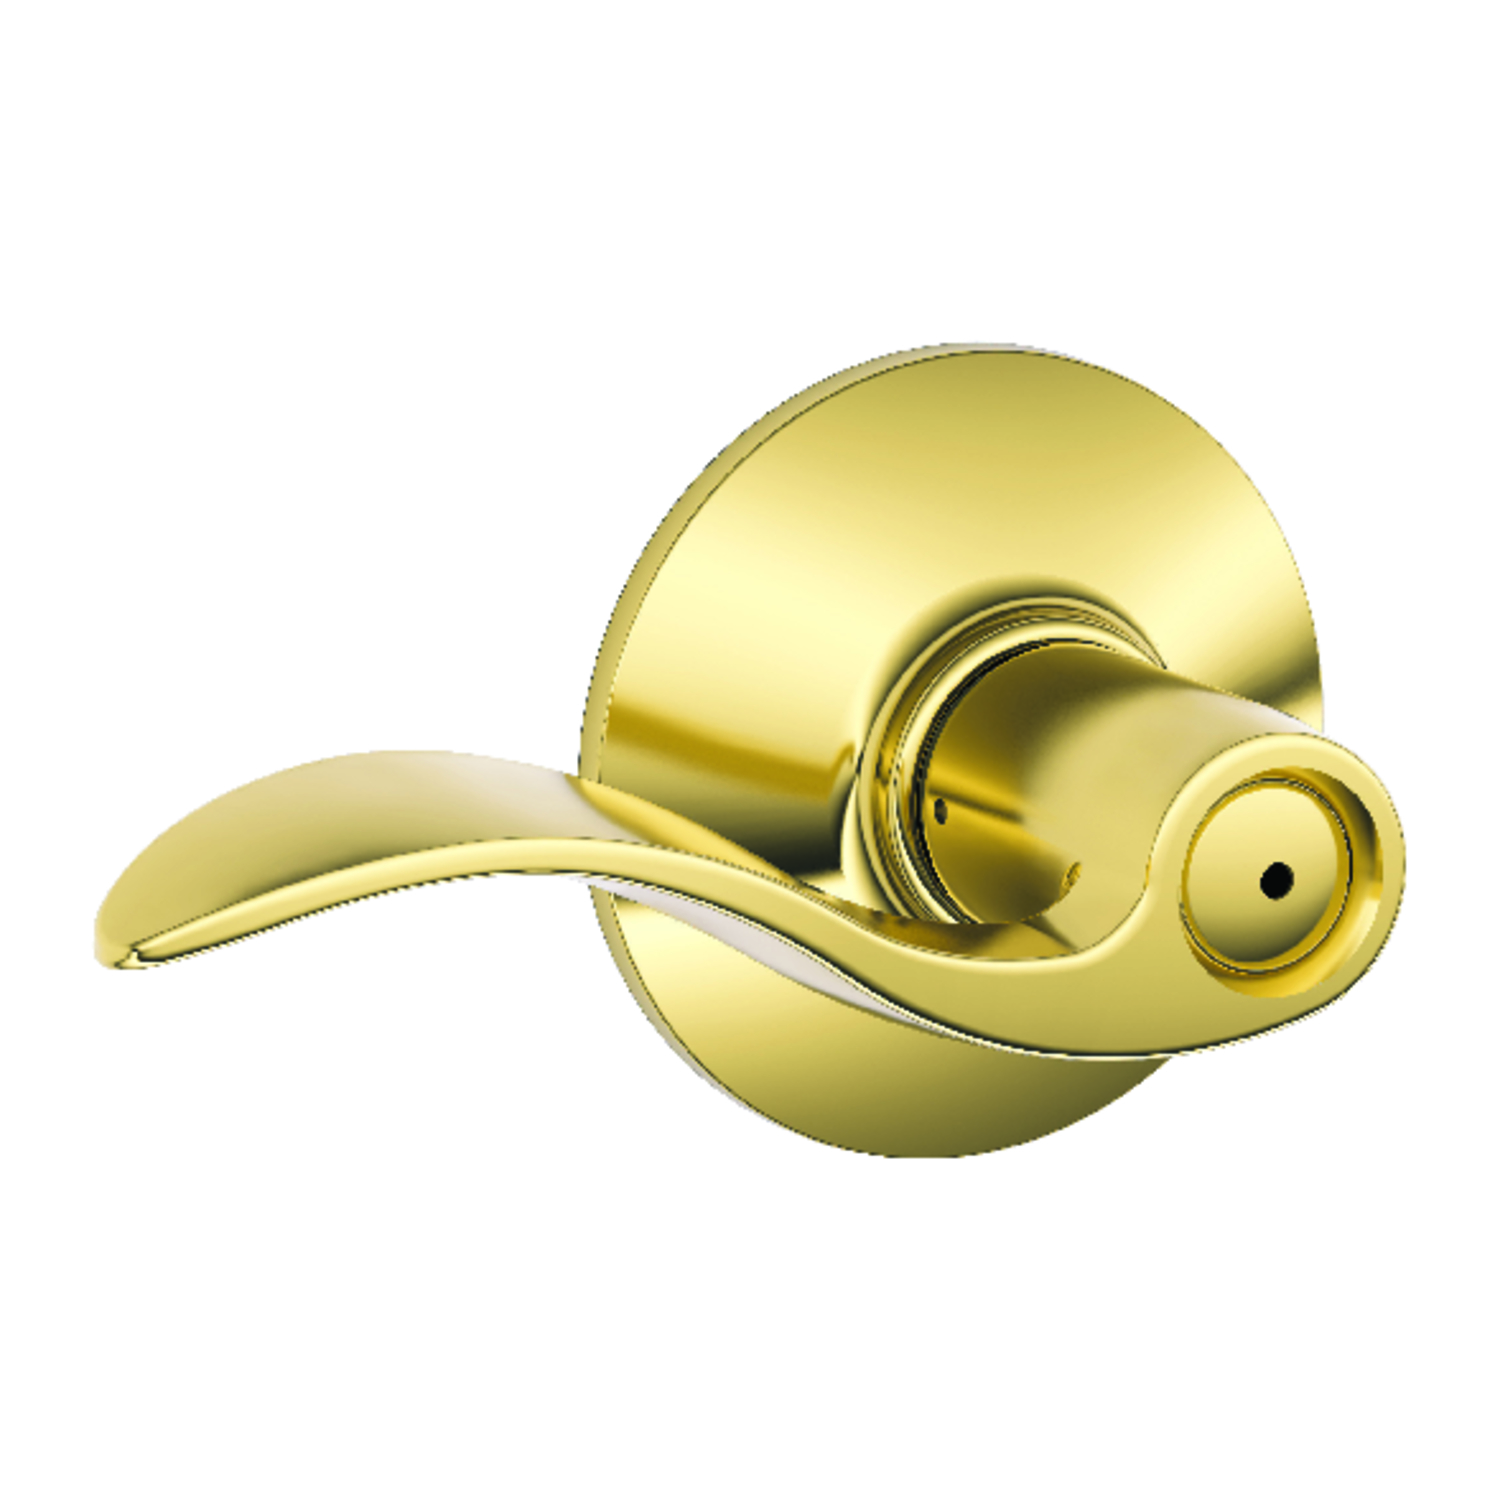 Schlage  Accent  Bright Brass  Steel  ANSI Grade 2  1-3/4 in. Privacy Lockset